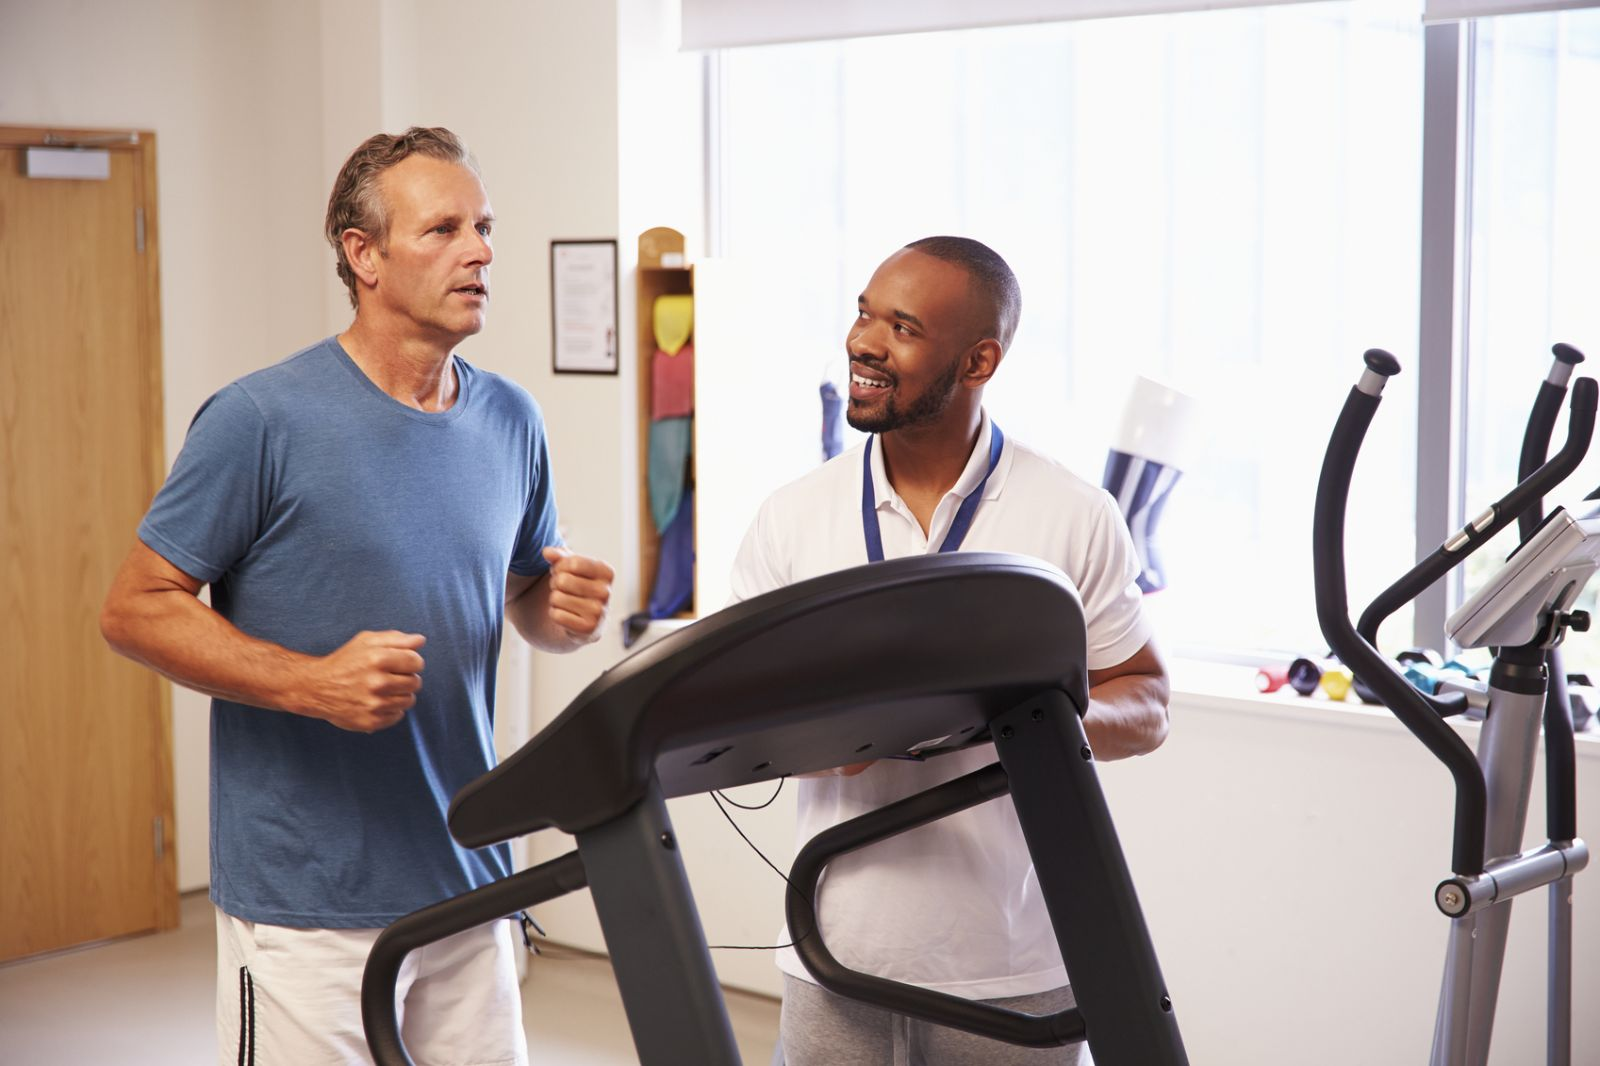 stress-test-cardiac-rehab-treadmill